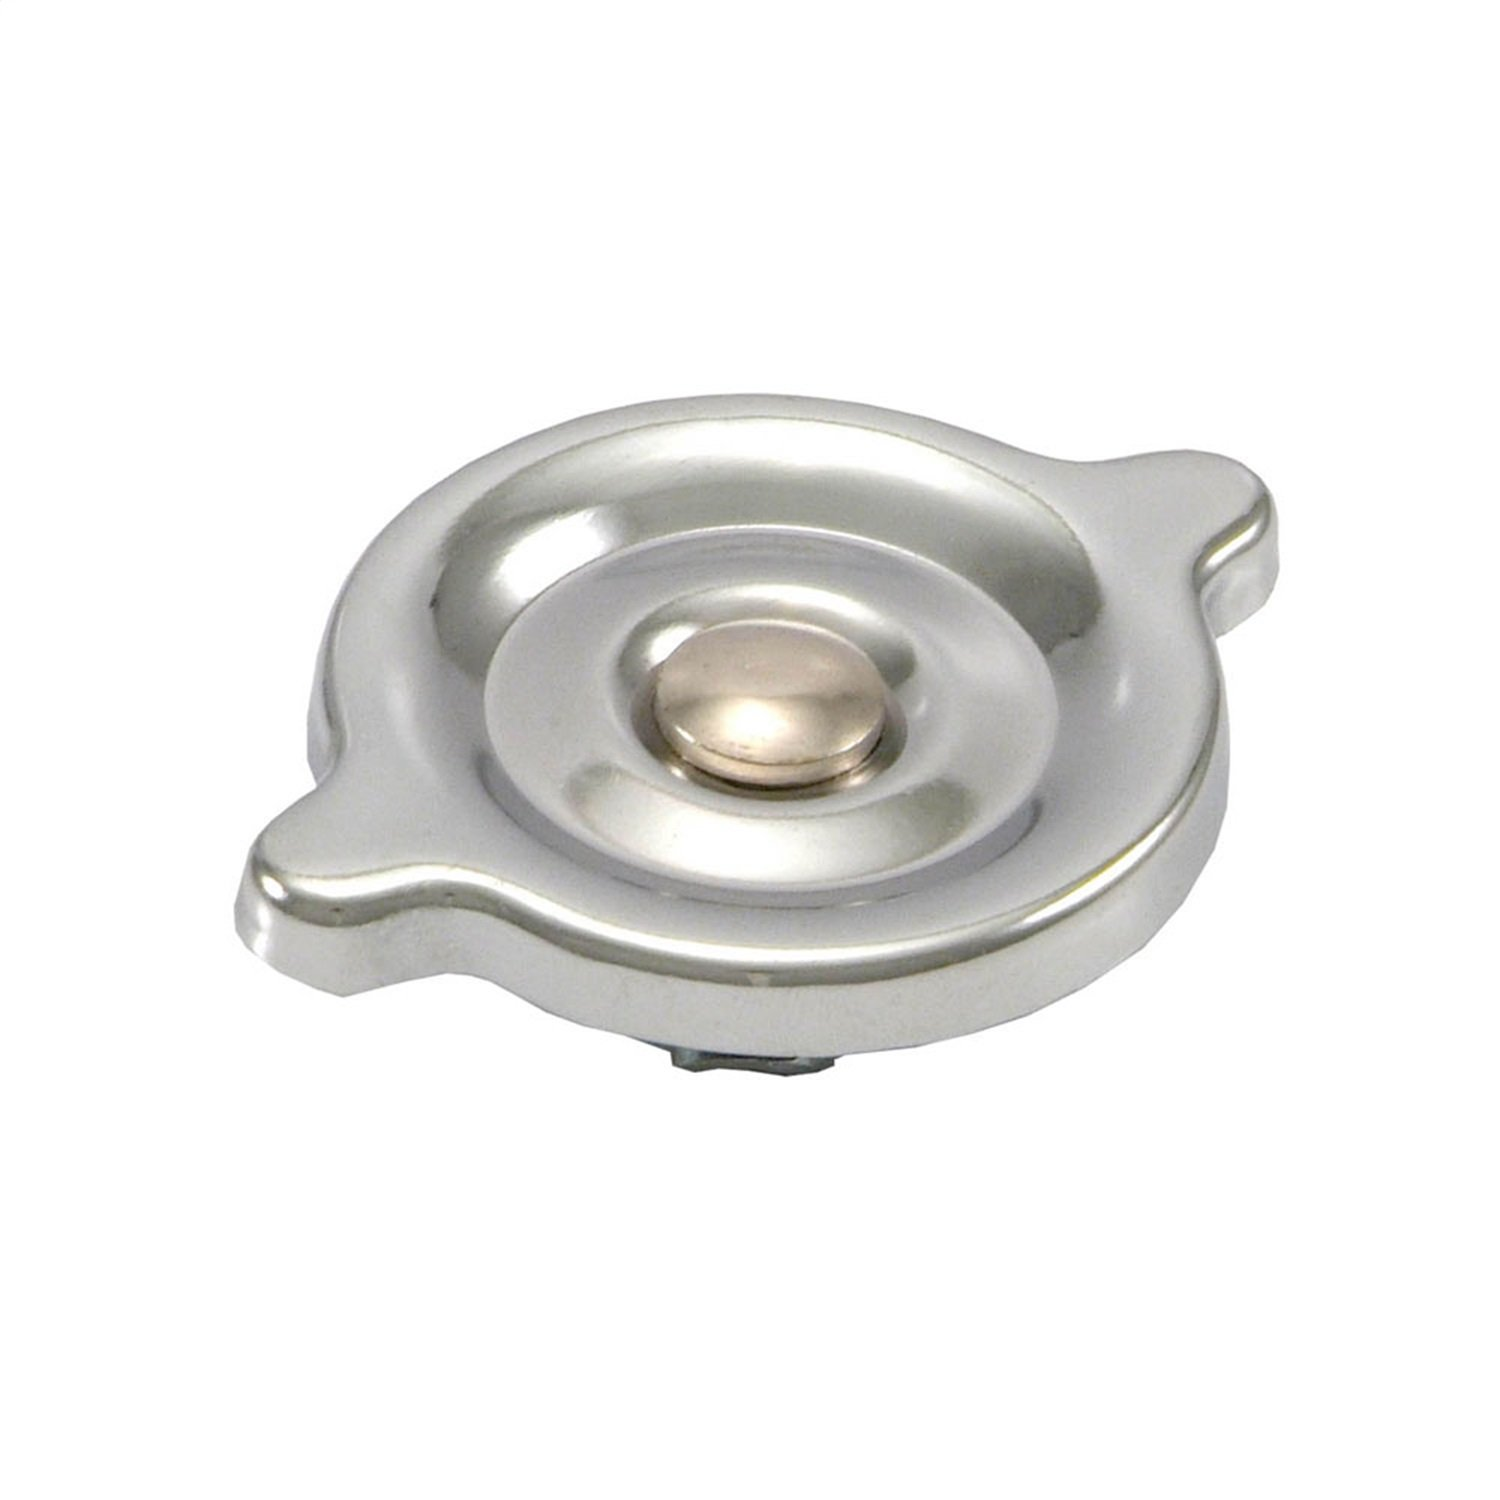 Mota Performance A70136 Chrome Plated Twist On Valve Cover Oil Filler Breather Cap with PCV Tube 2-3//8 Diameter